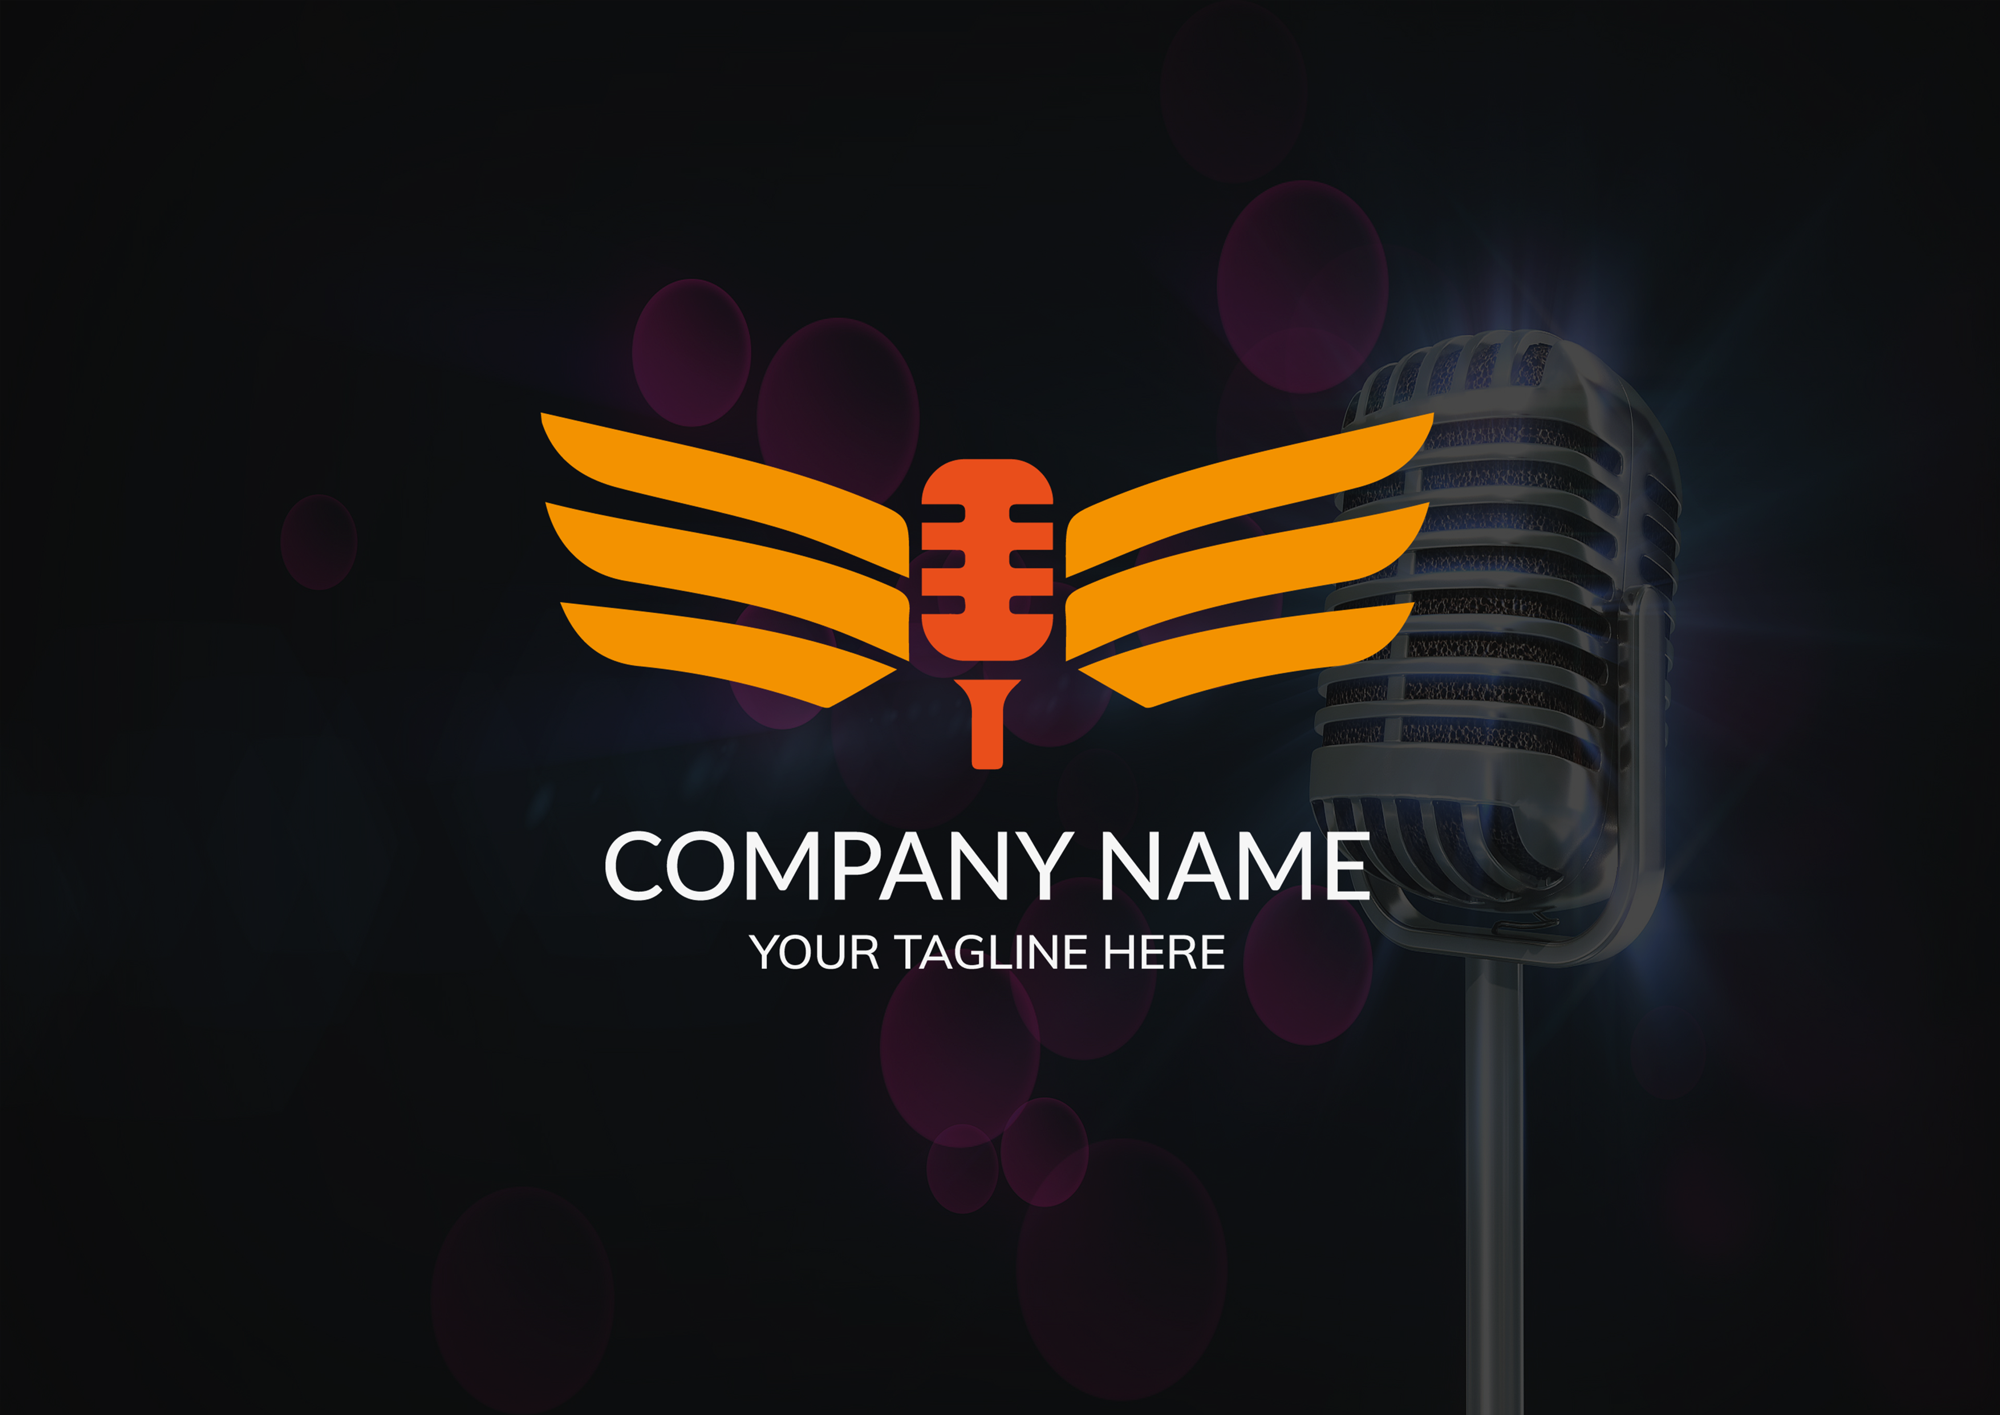 I will make logo for you within 24 hours.